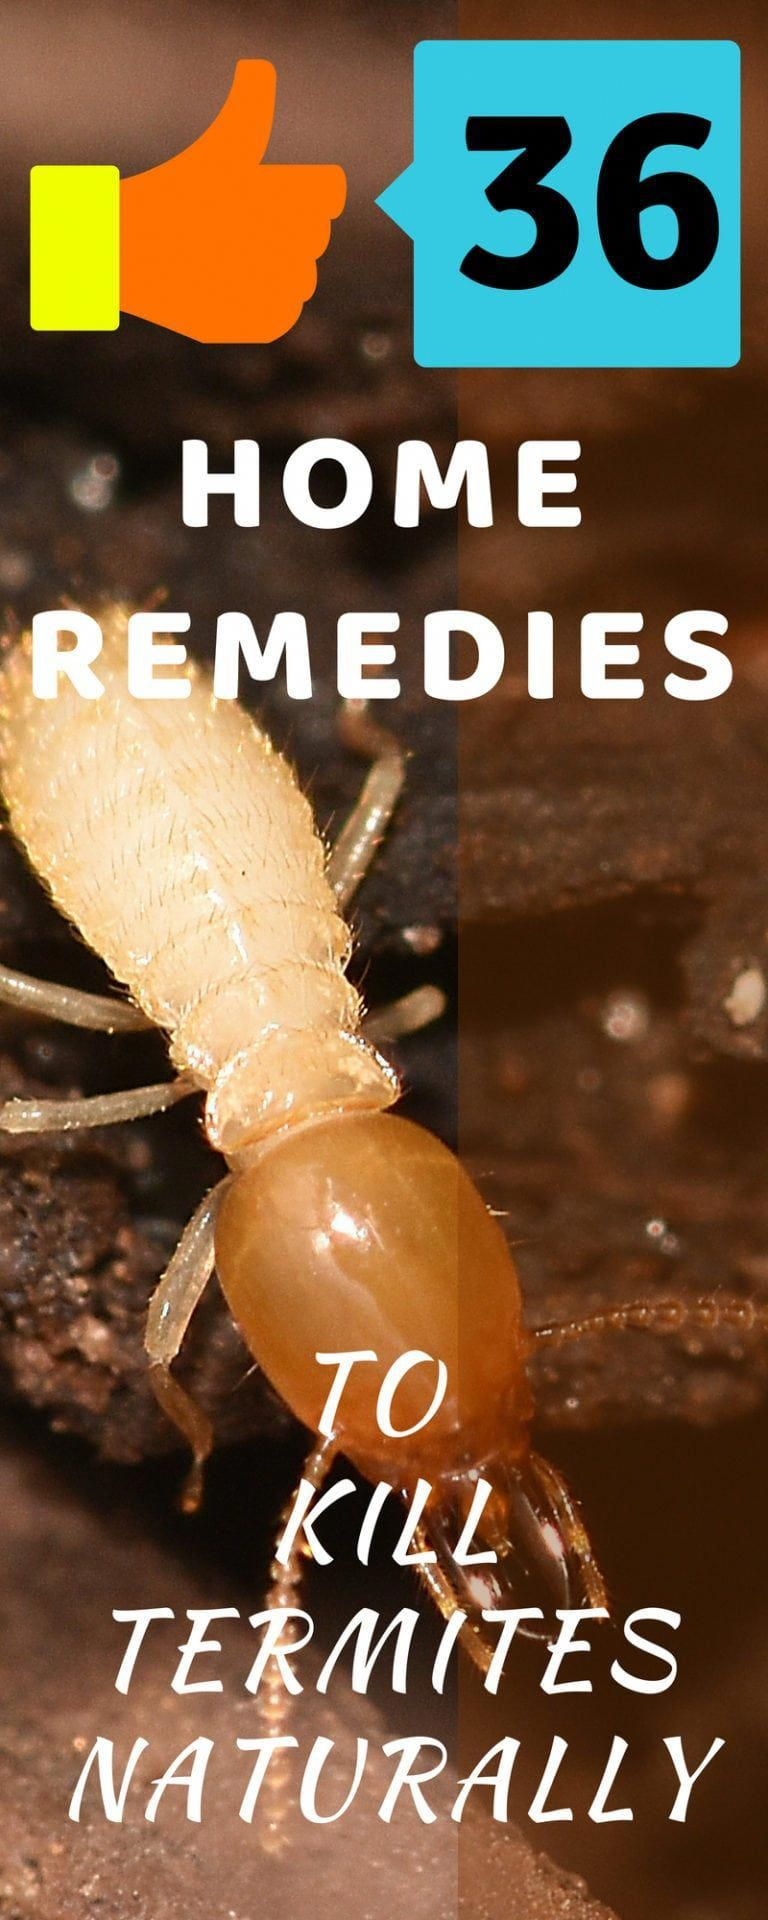 36 Termite Control Remedies How to Get Rid of Termites